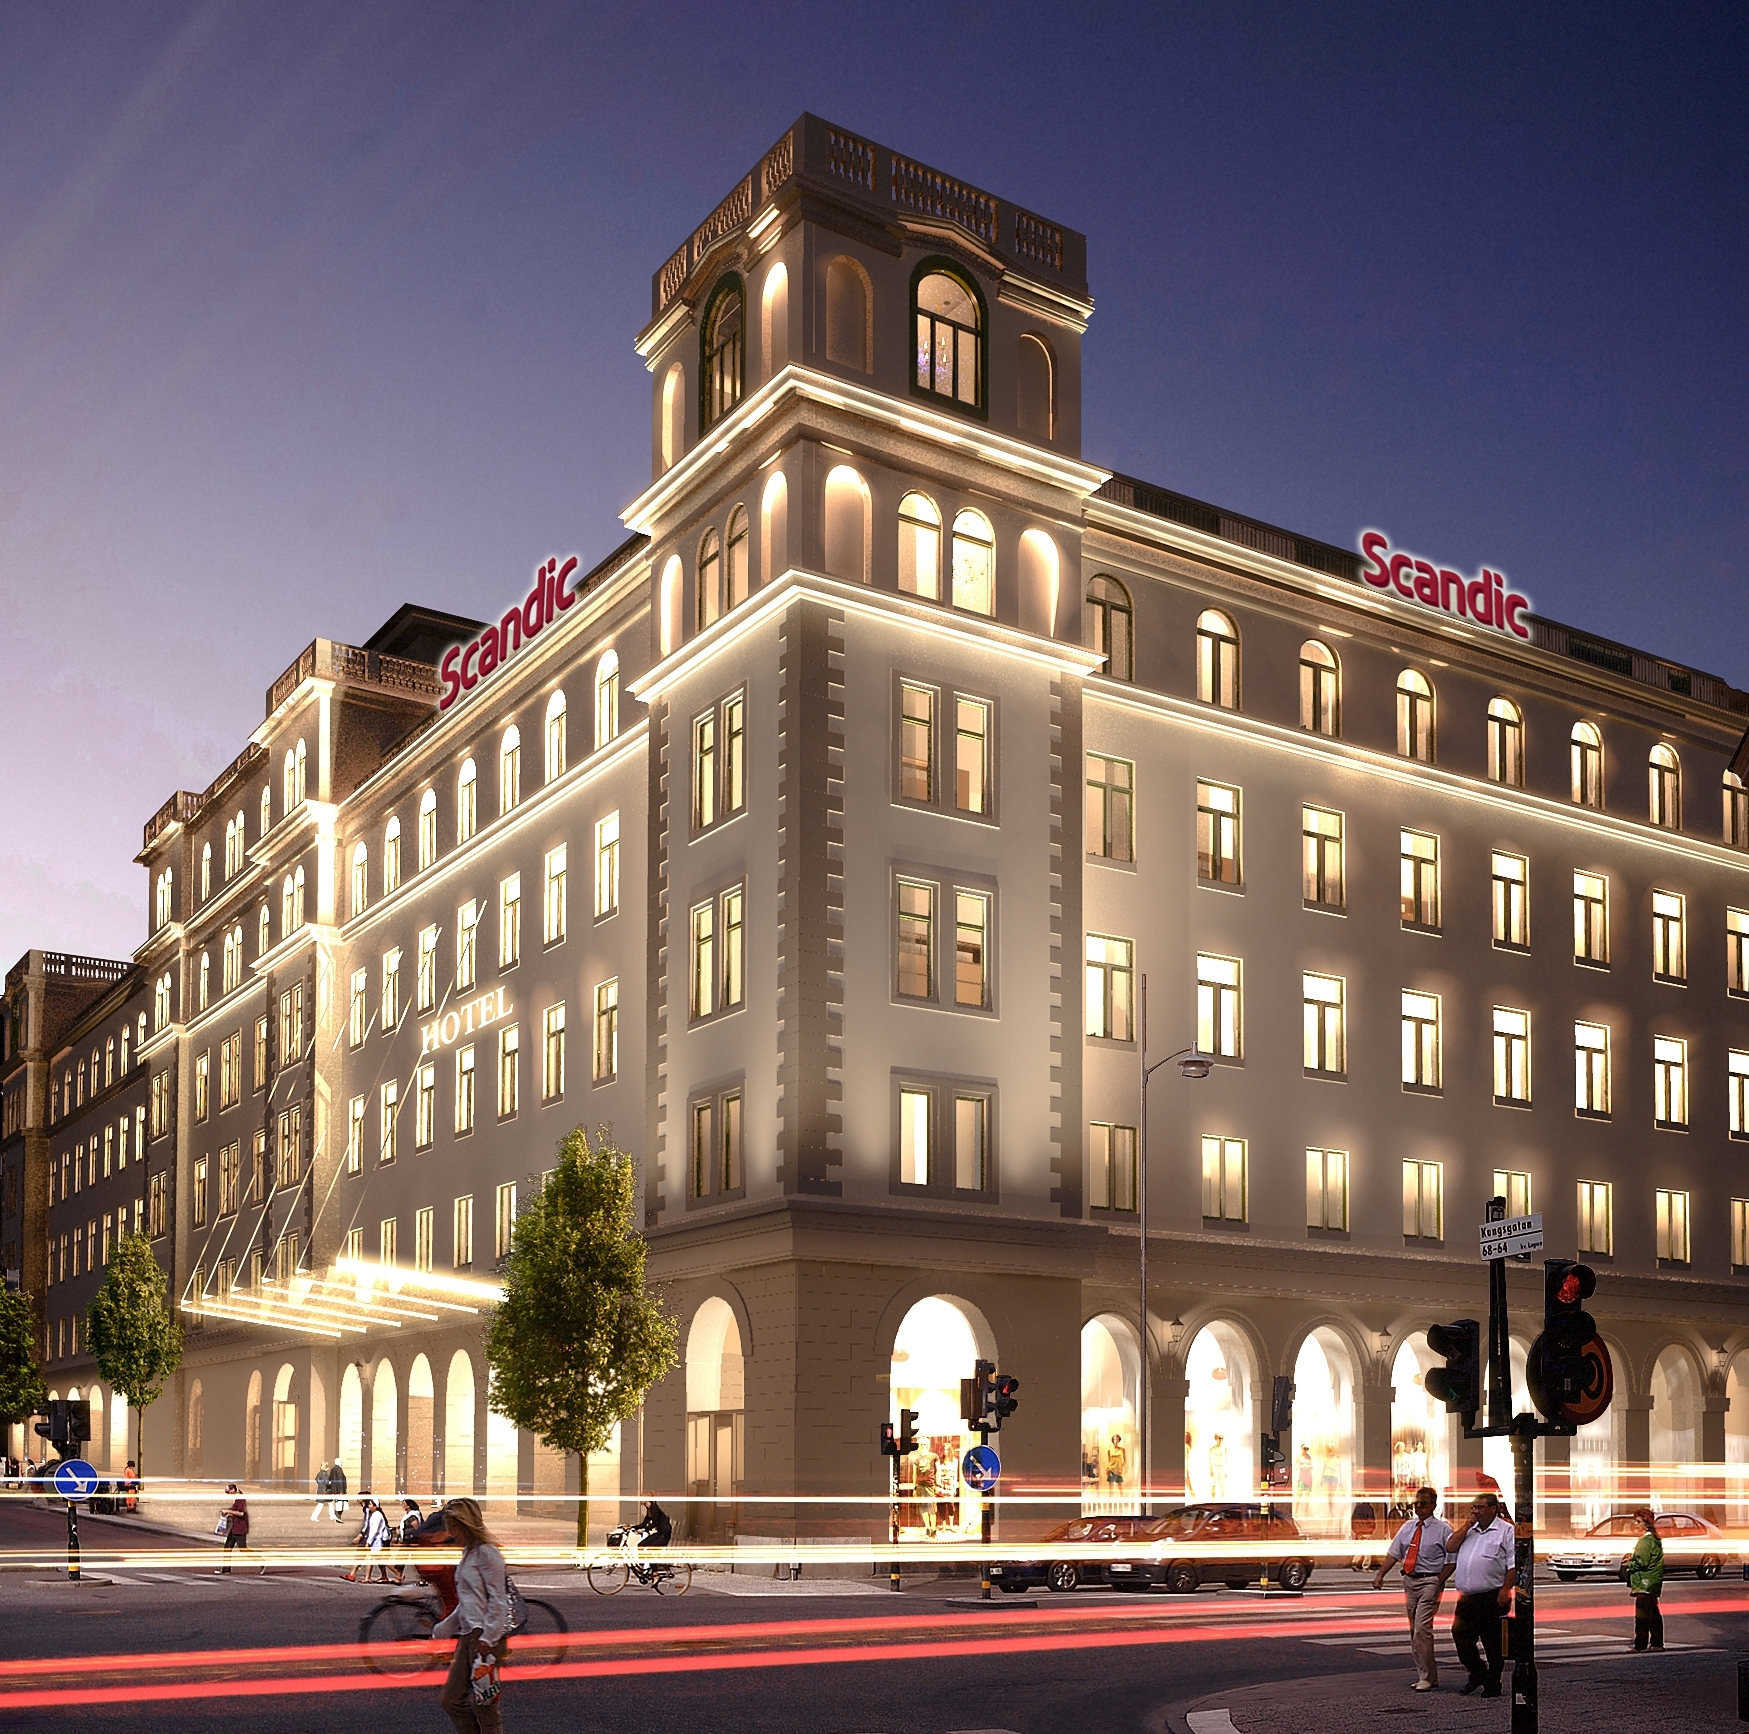 Scandic creates Stockholm's most exciting hotel